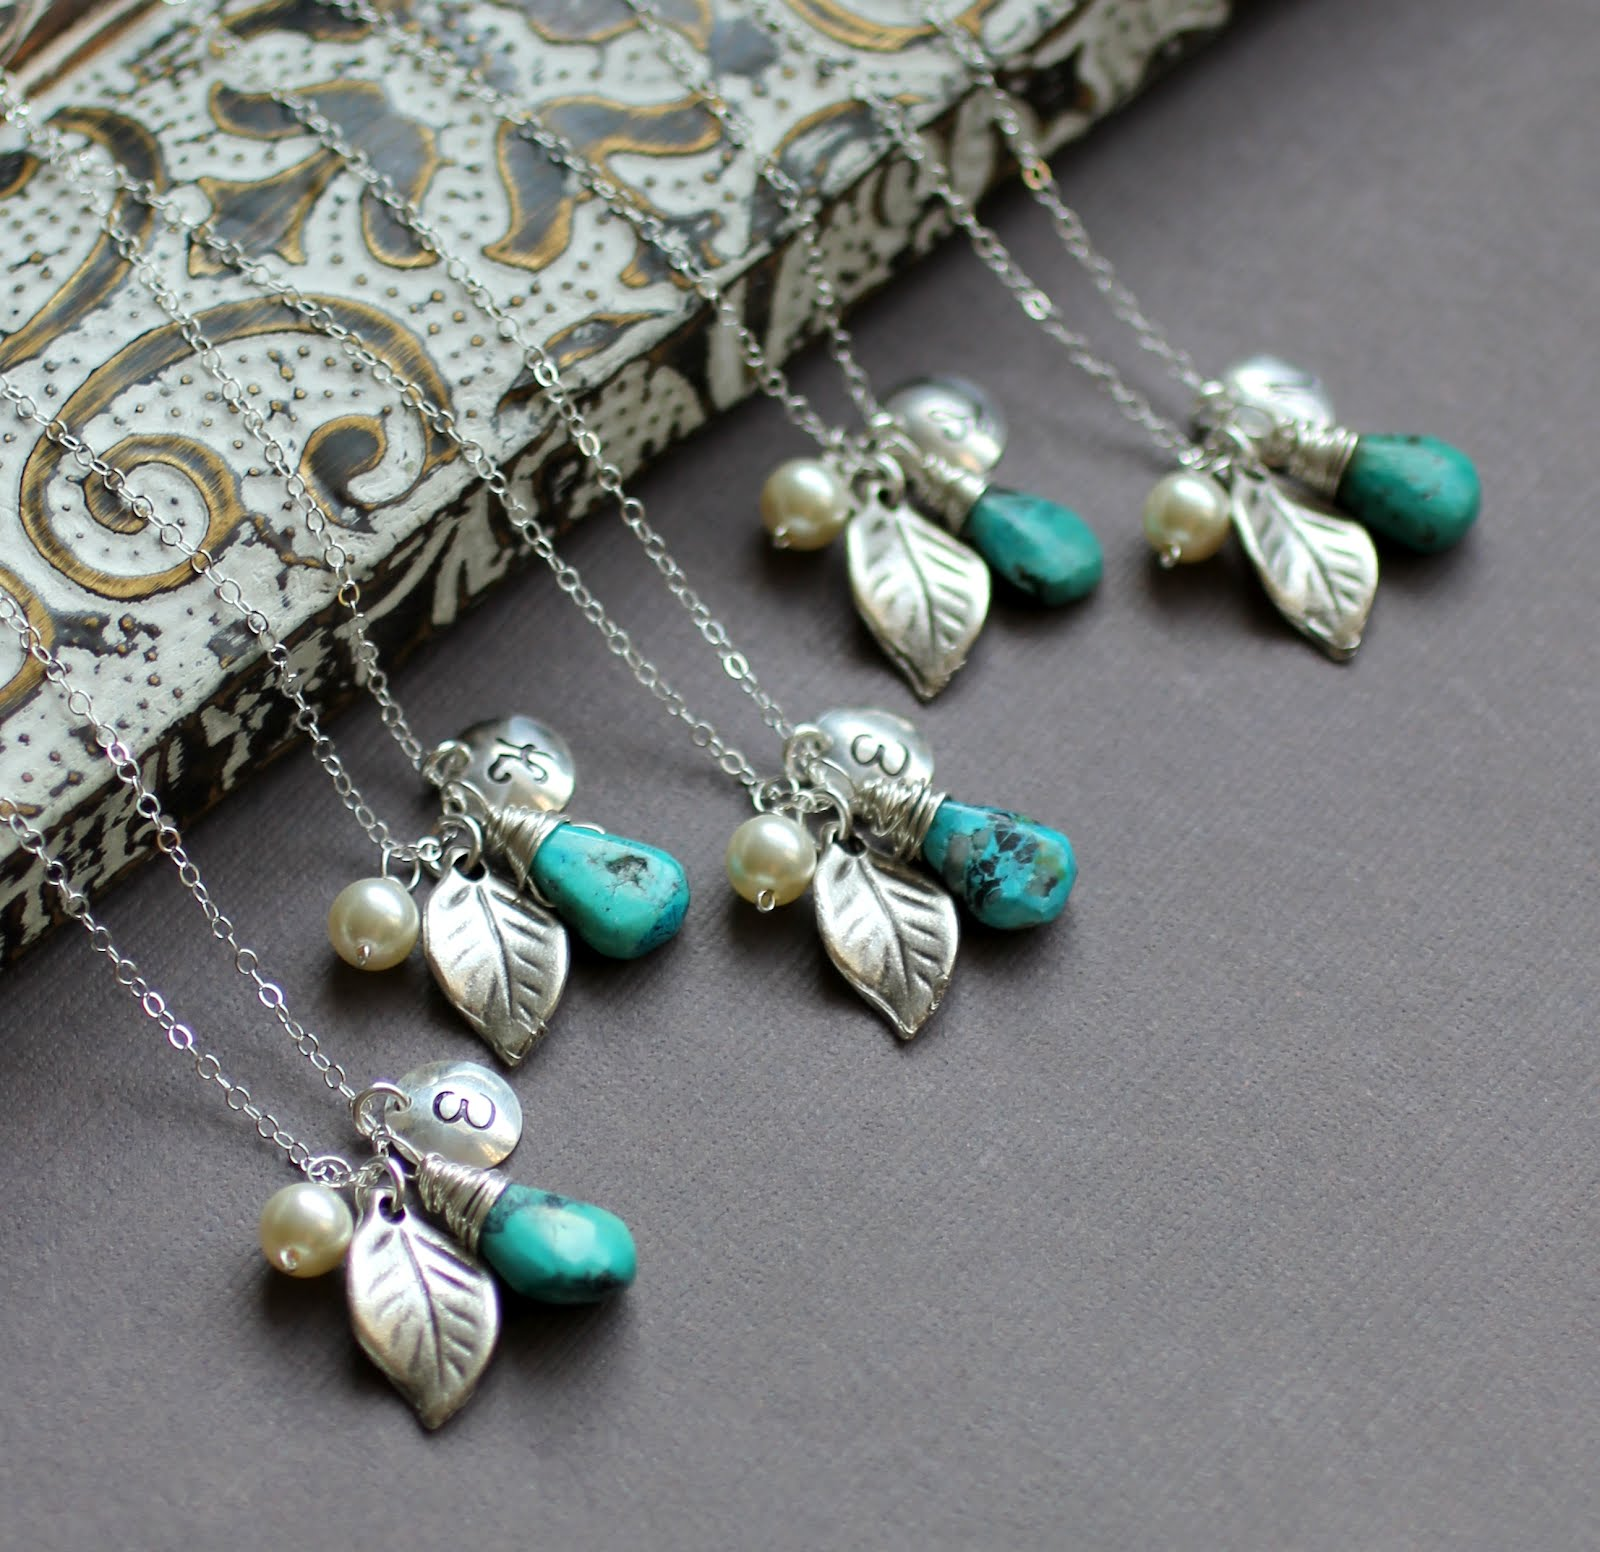 Nature Inspired Handcrafted Jewelry: Personalized